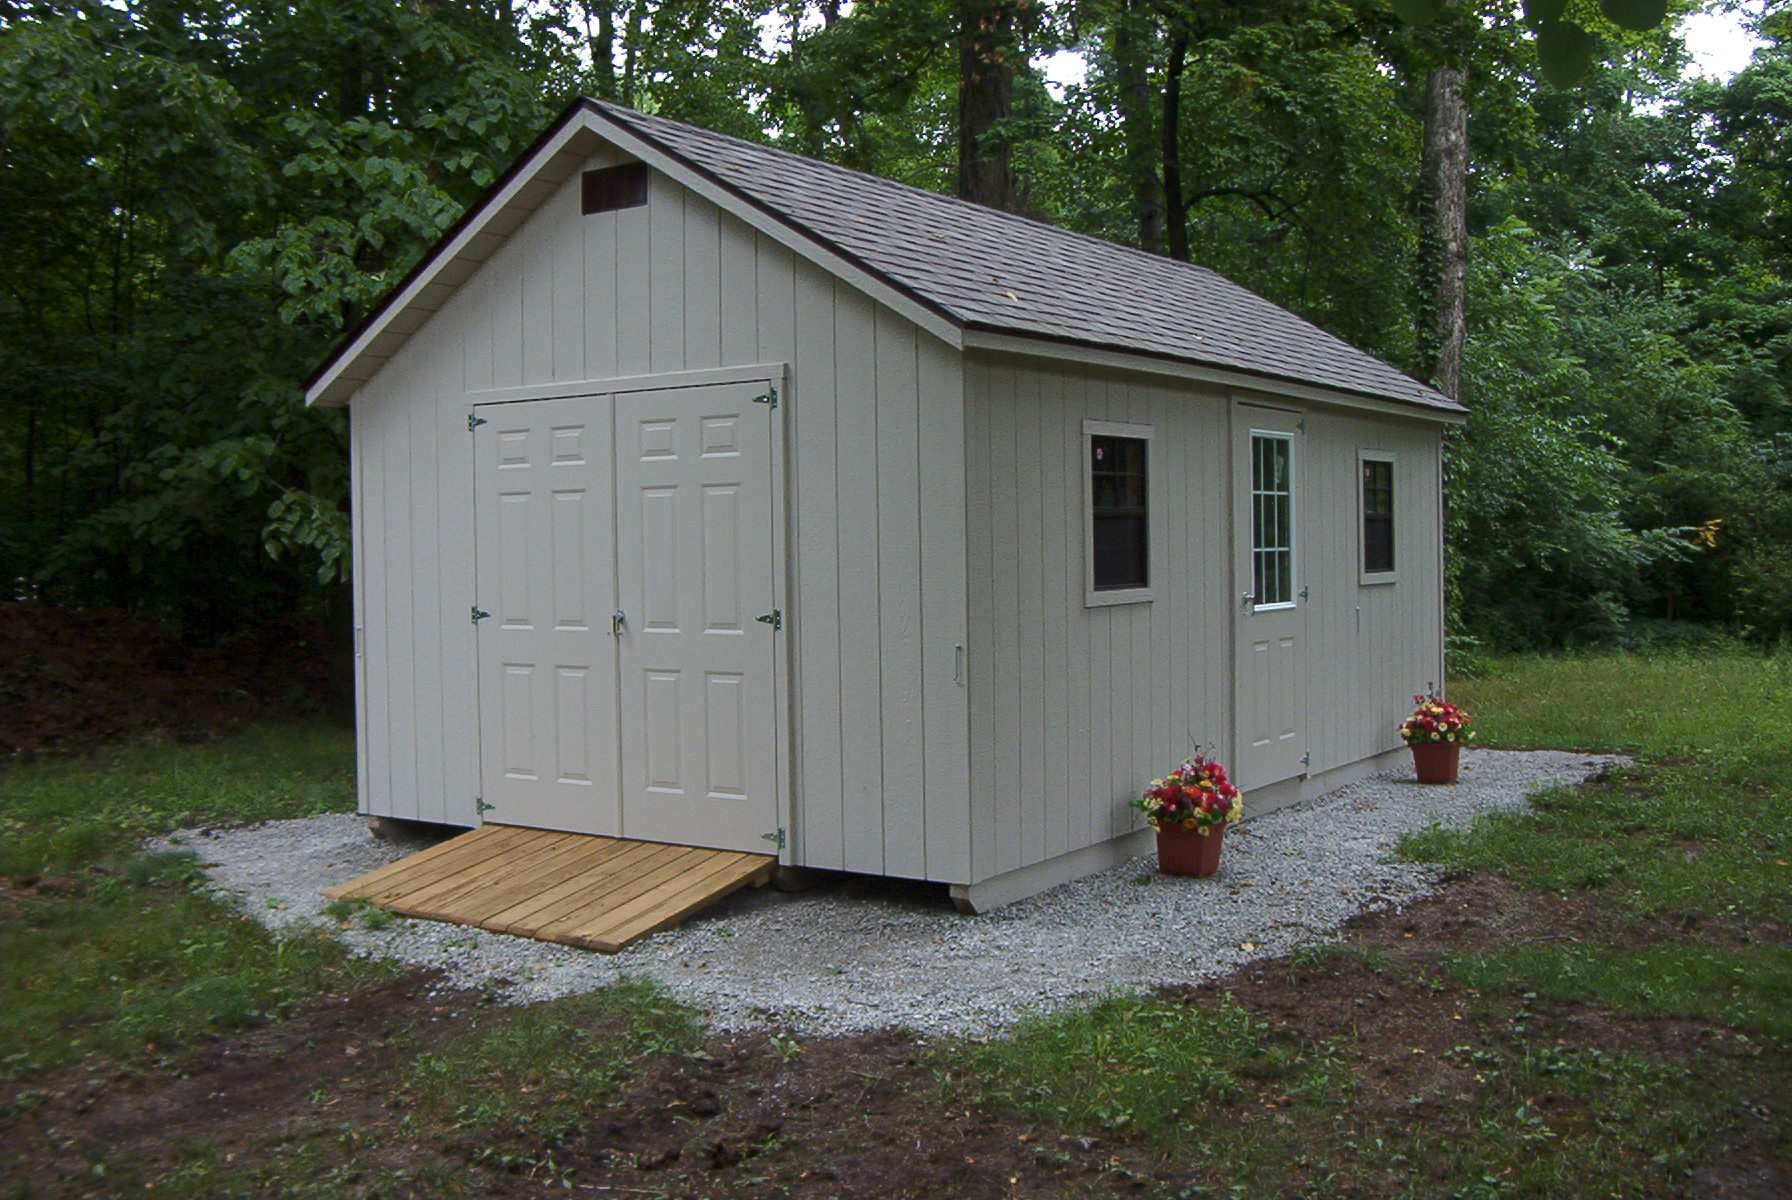 10 12 Garages : Lean to shed tell a roof pitch